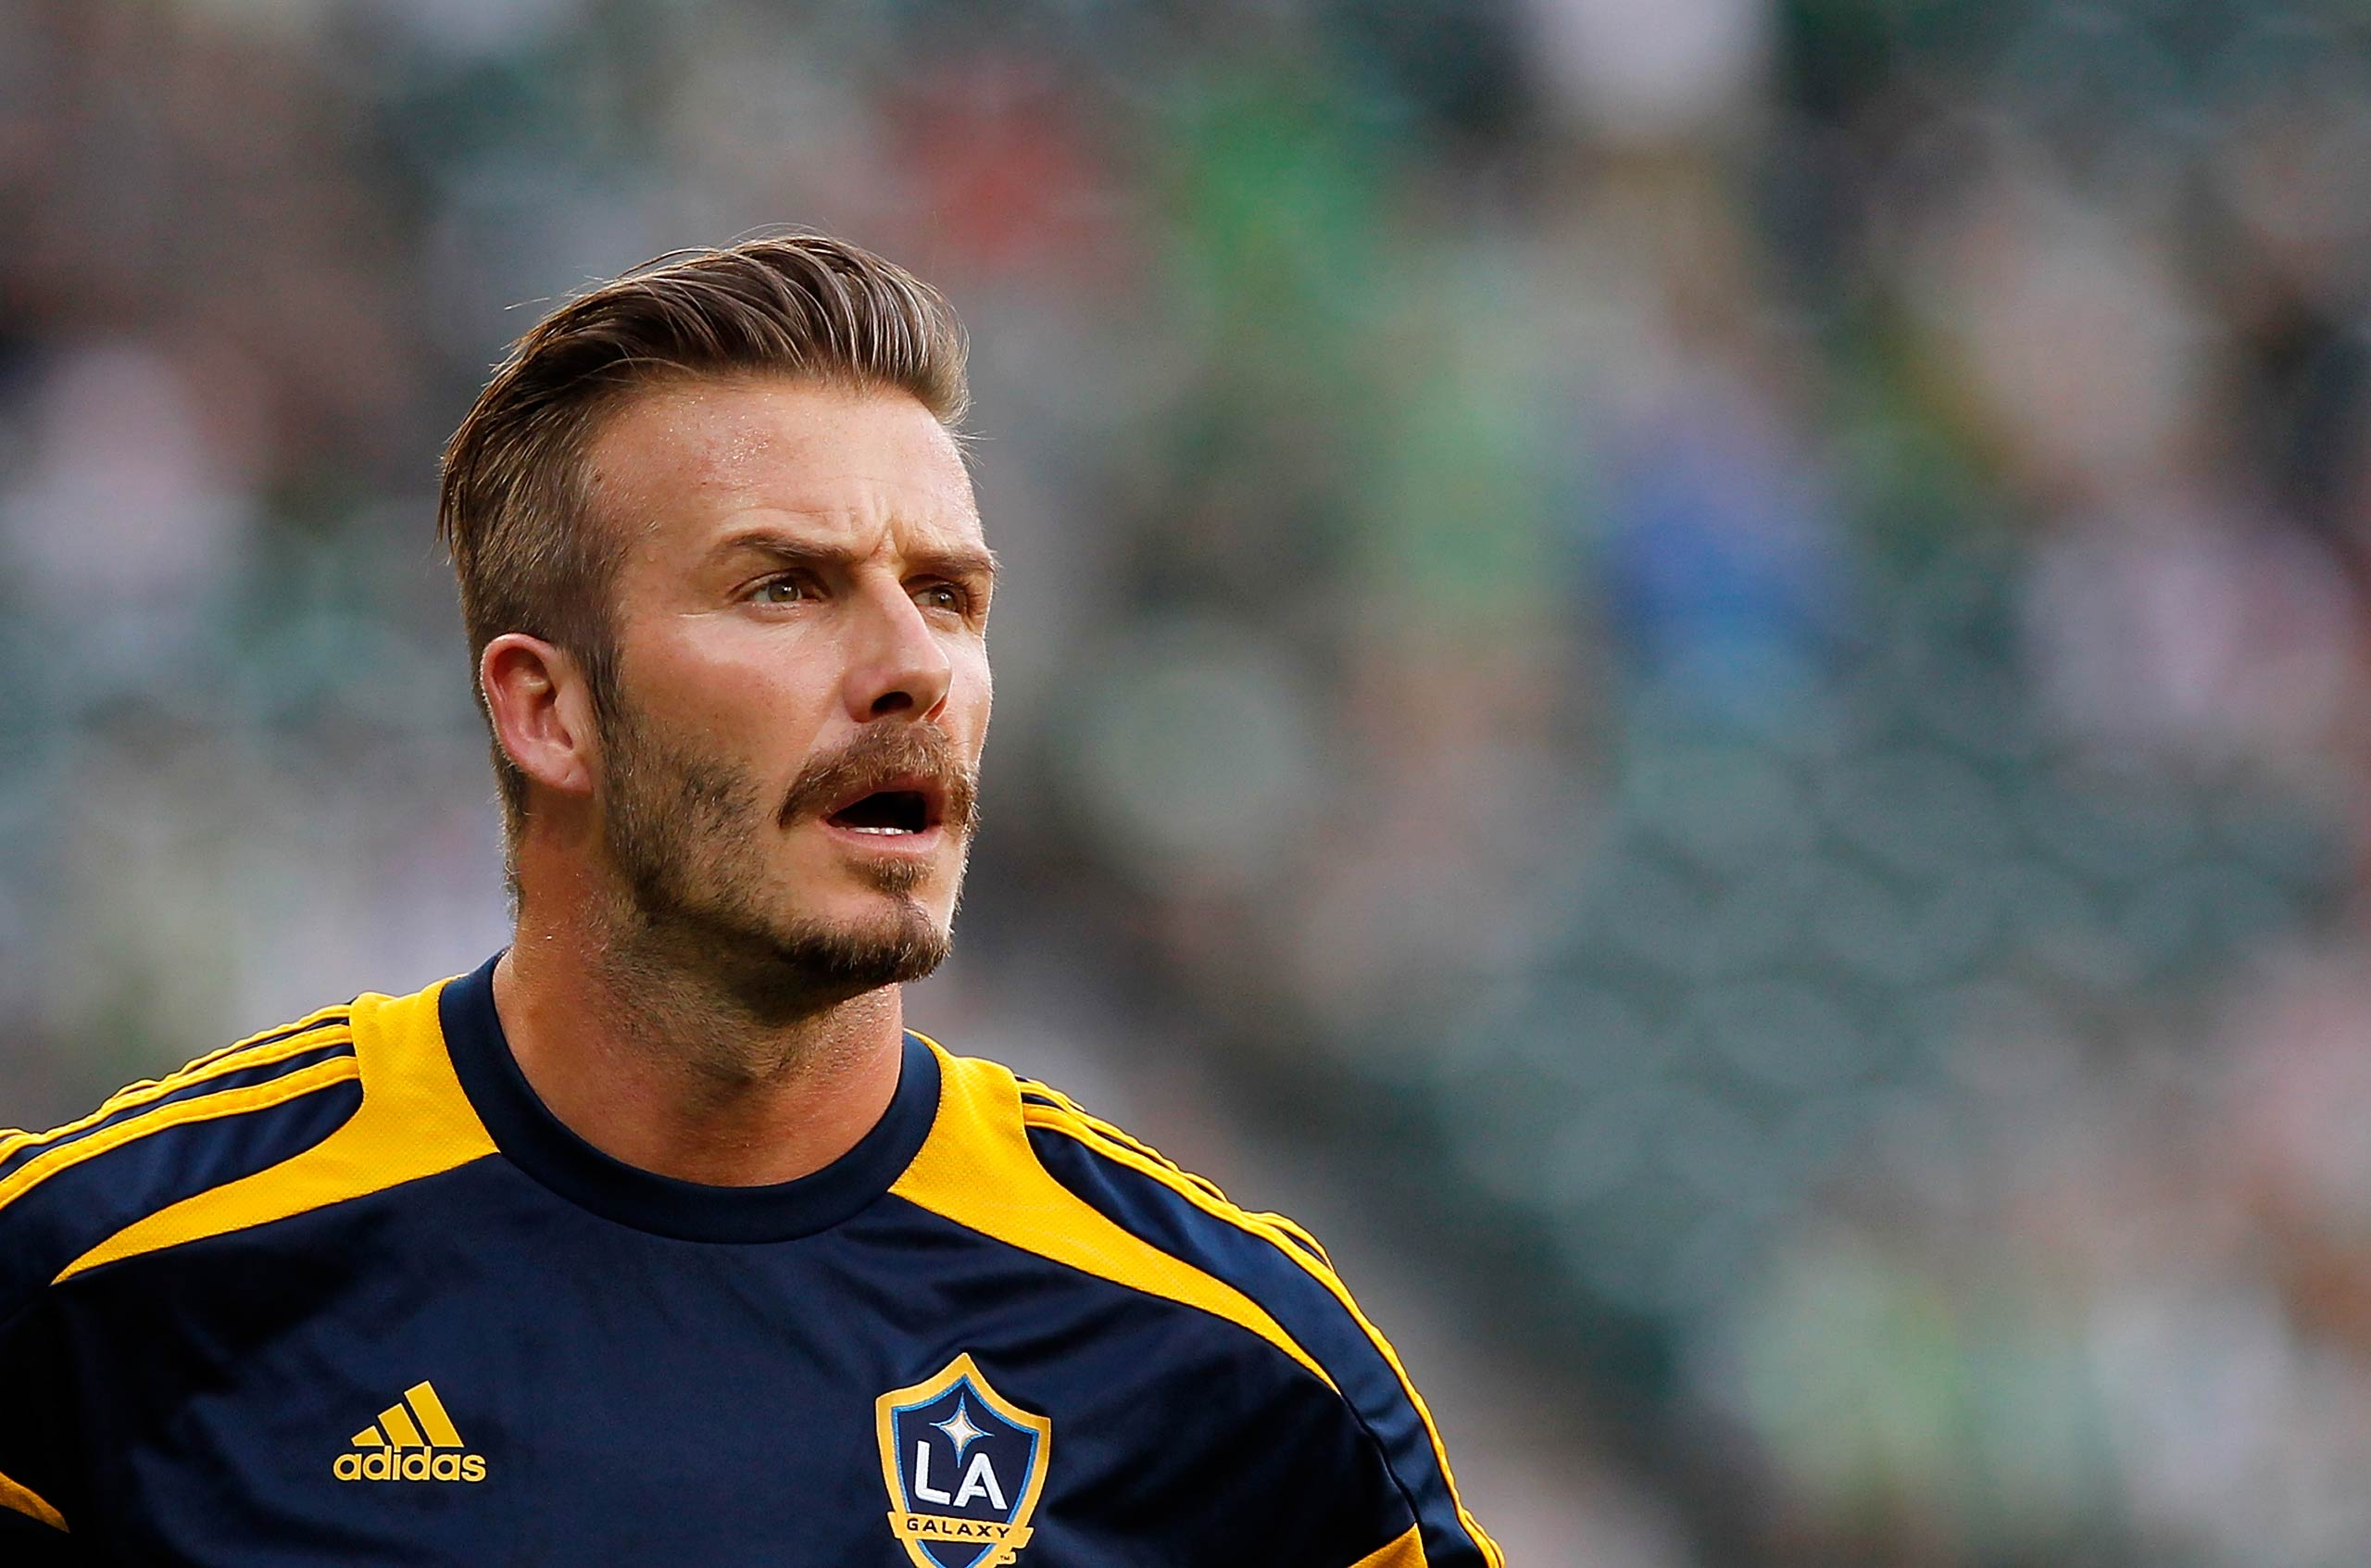 David Beckham of the Los Angeles Galaxy is seen during the pregame warmup against  the Portland Timbers at Jeld-Wen Field in Portland, Ore. in 2012.